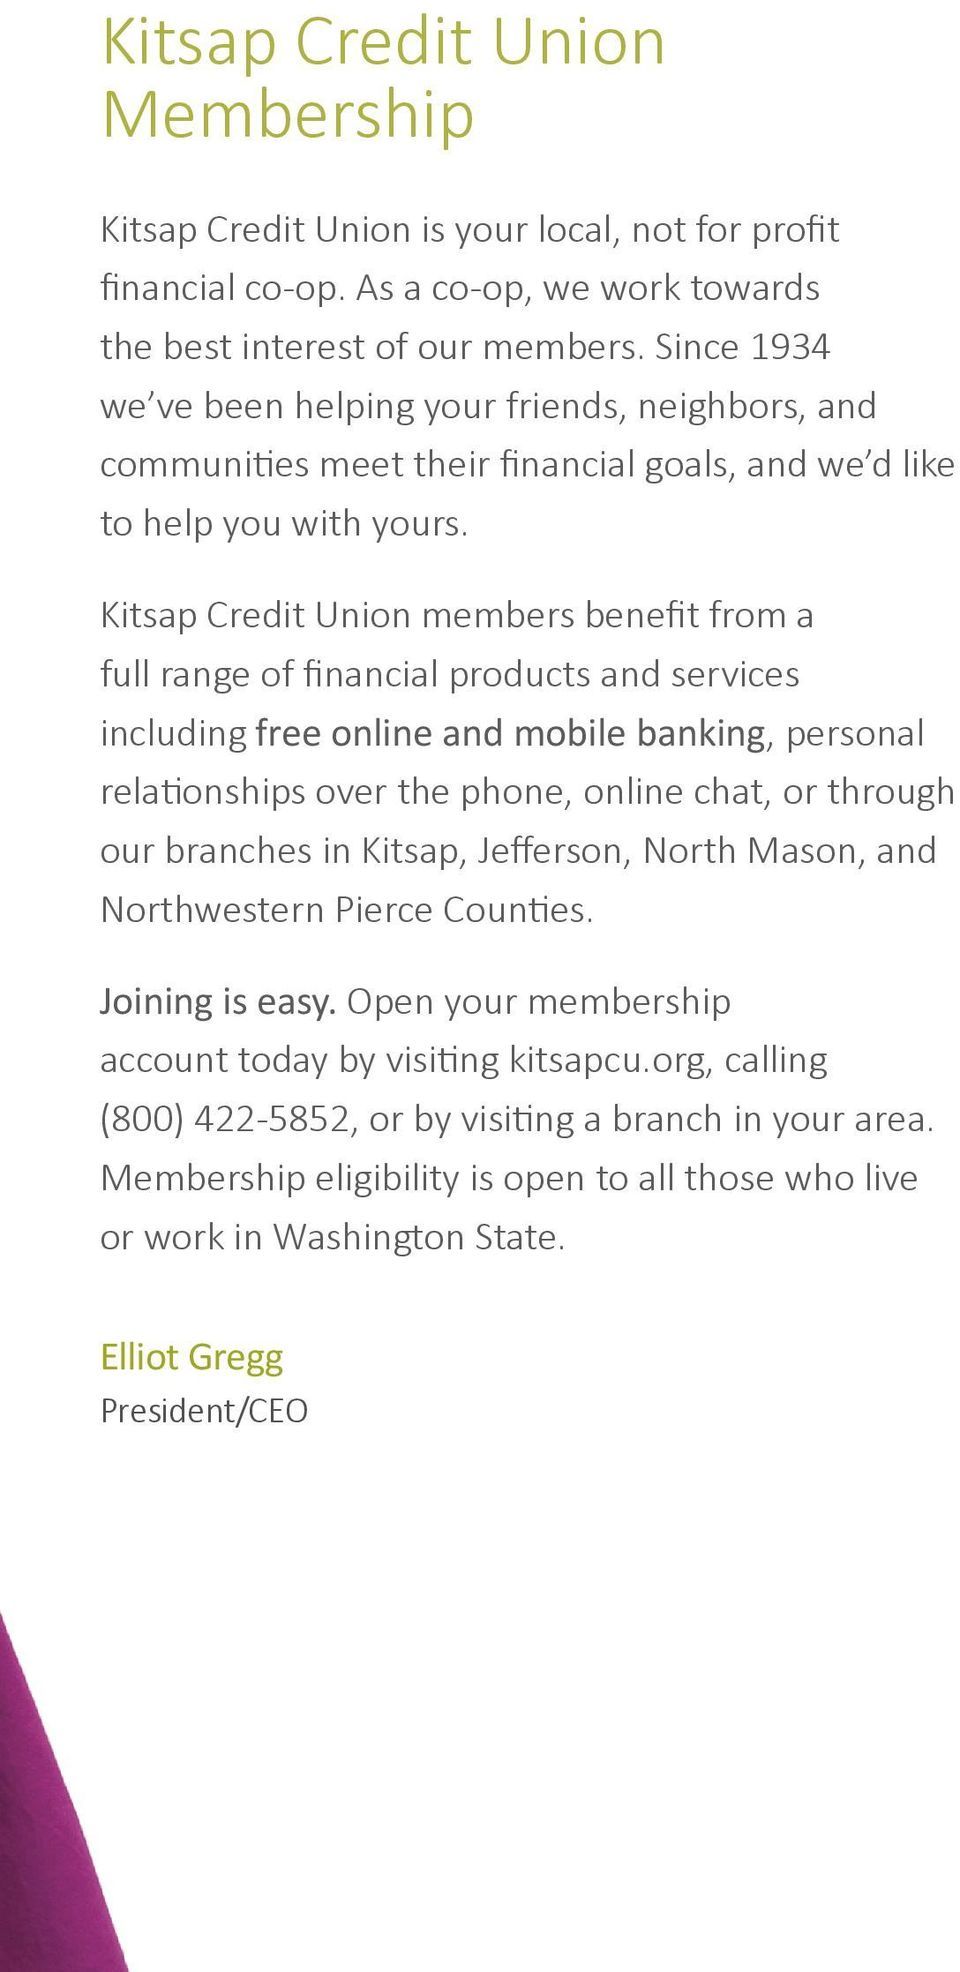 Kitsap Credit Union members benefit from a full range of financial products and services including free online and mobile banking, personal relationships over the phone, online chat, or through our